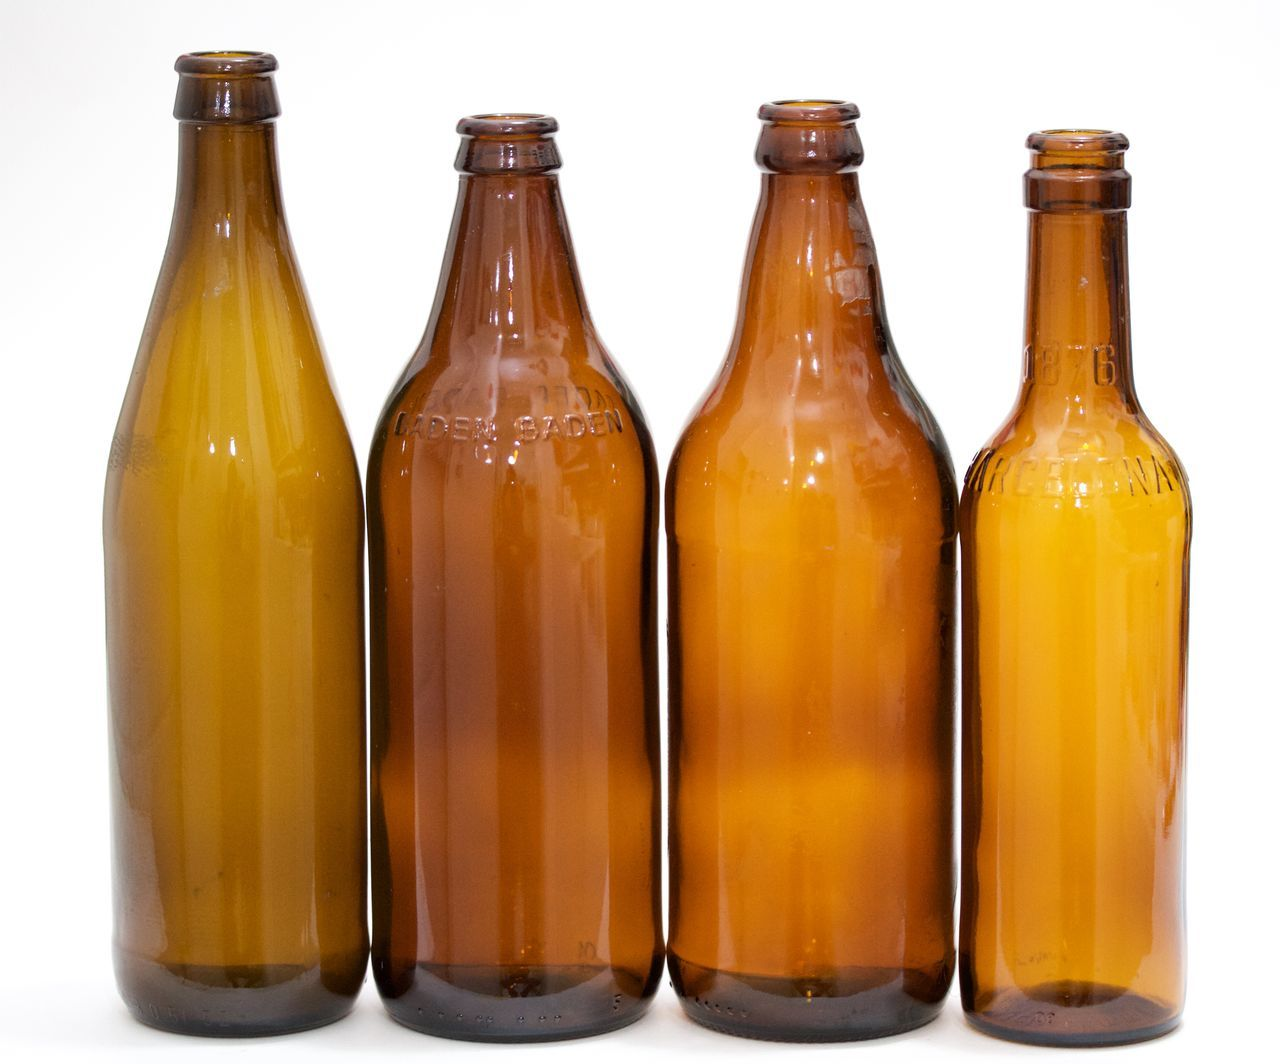 four brown bottles on white background Alcohol Beer Bottle Brown Bottles Cultures Food Food And Drink Glass - Material No People